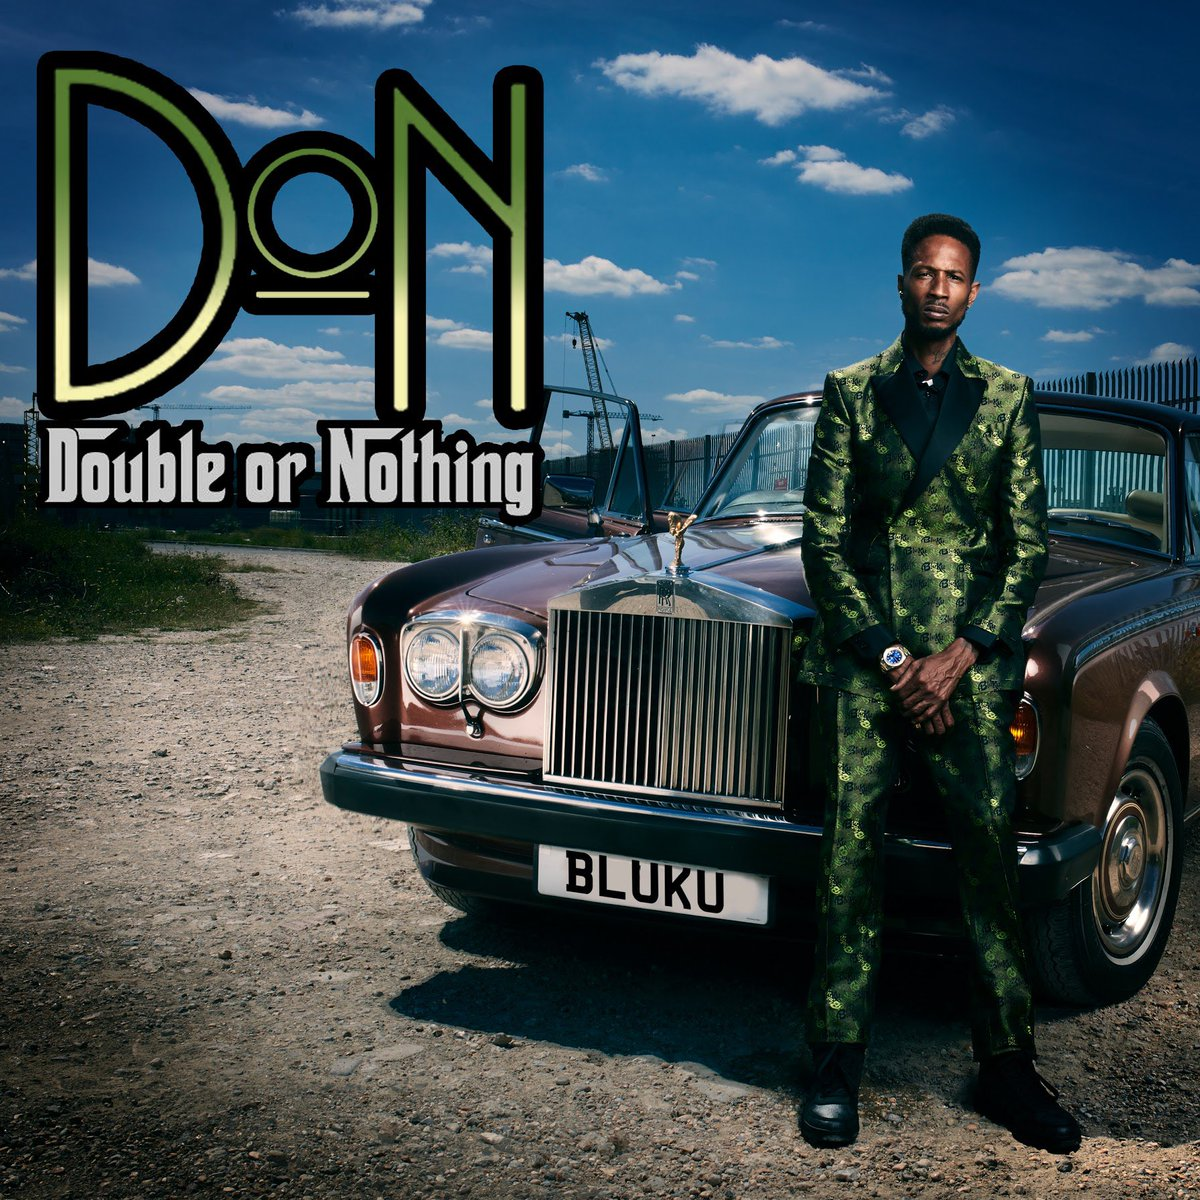 PUT THIS DATE IN YOUR DIARY RUUUUDEBOY  RT @DDoubleE7: 23rd October 2020  Double Or Nothing   PUT THE DATE IN YOUR DIARY 😎  #doubleornothing https://t.co/ulhemBZph5